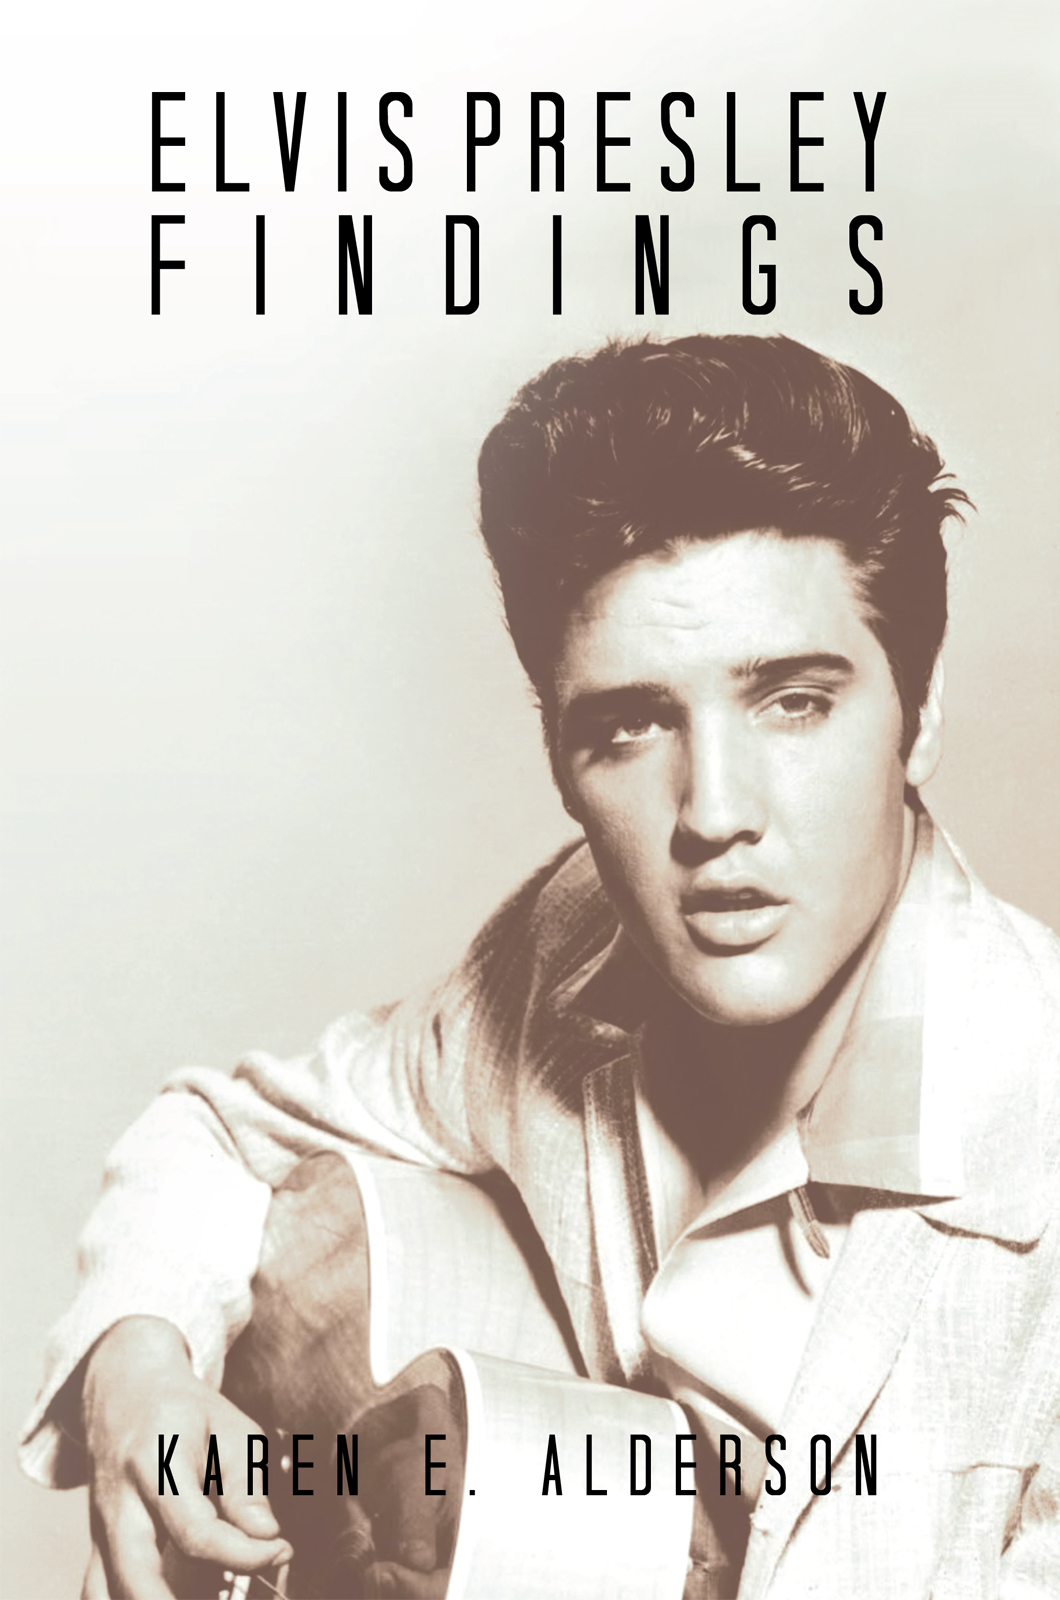 Elvis Presley Findings